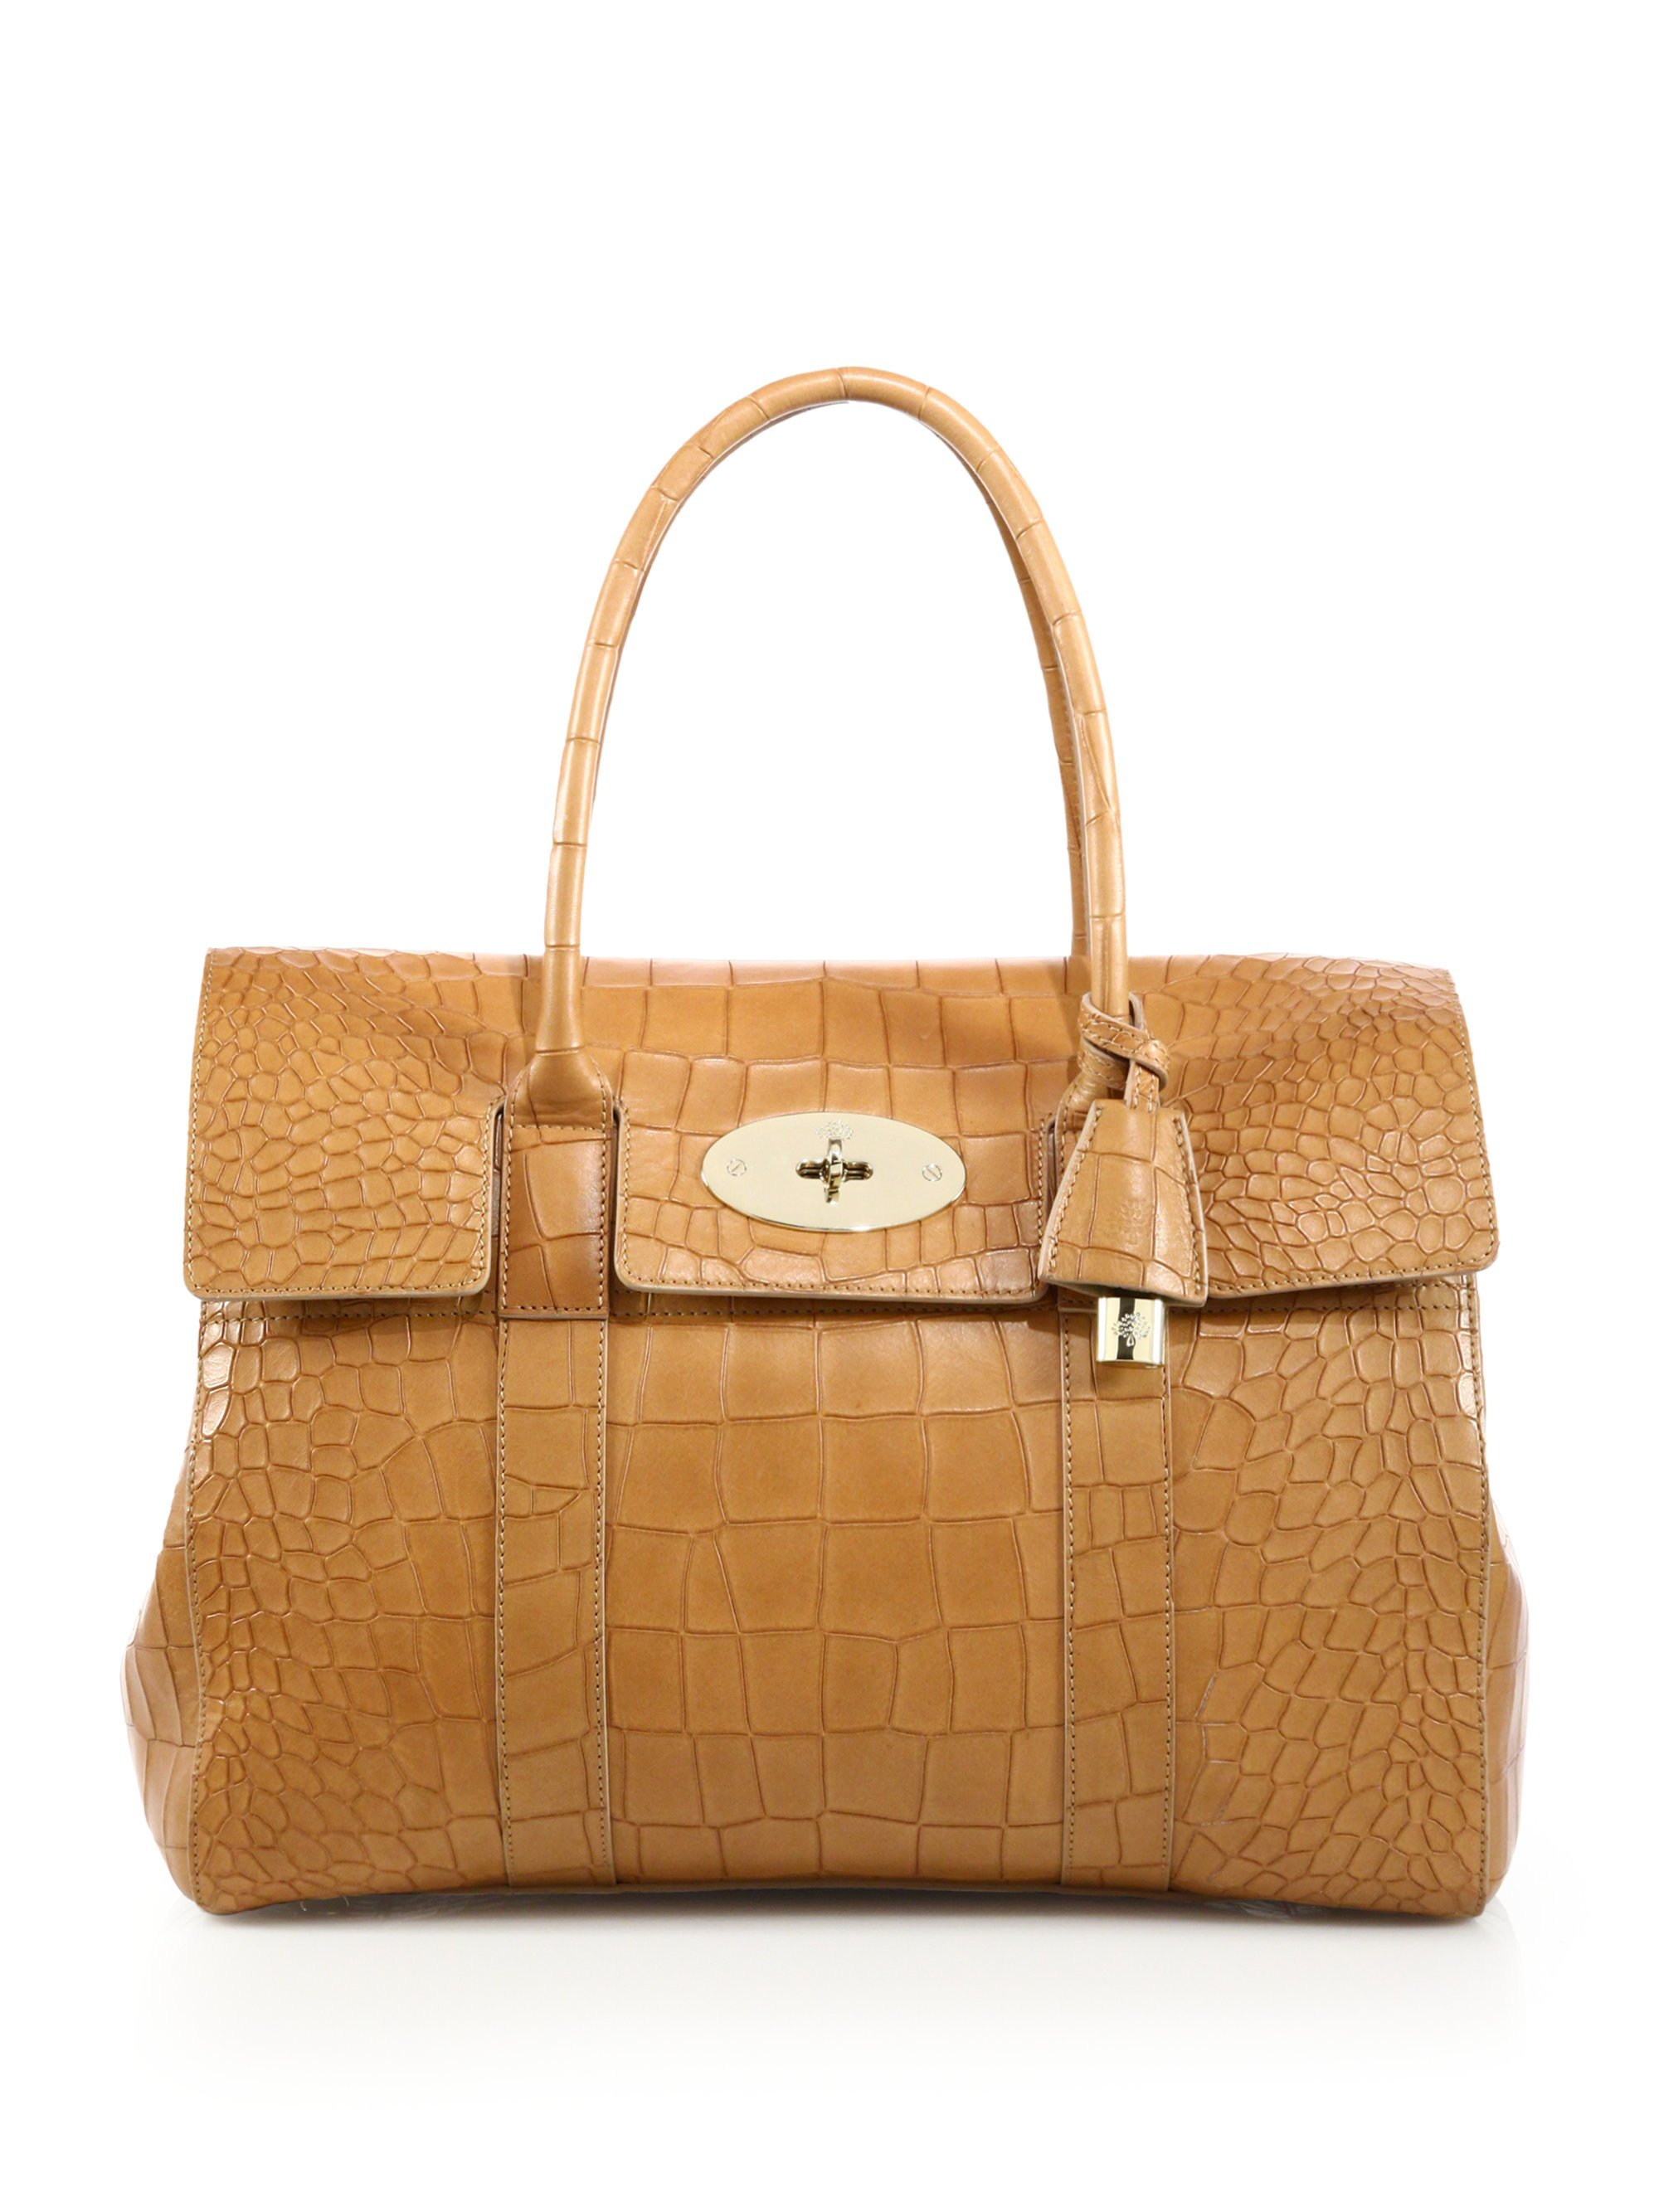 539358f4555d Lyst - Mulberry Croc Embossed Bayswater Tote in Brown